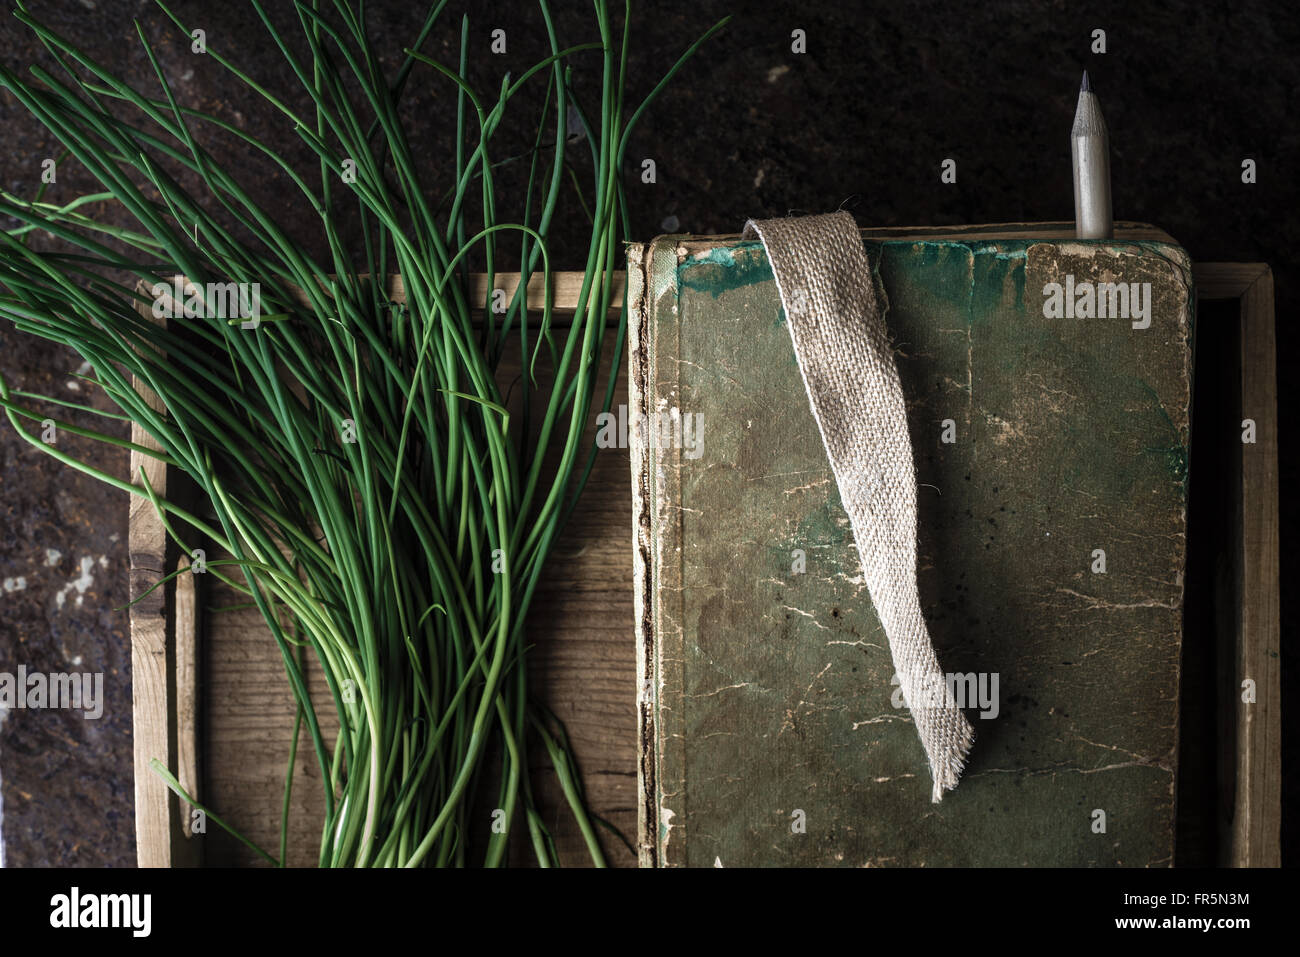 Green onion stalks and the book in a wooden box horizontal - Stock Image